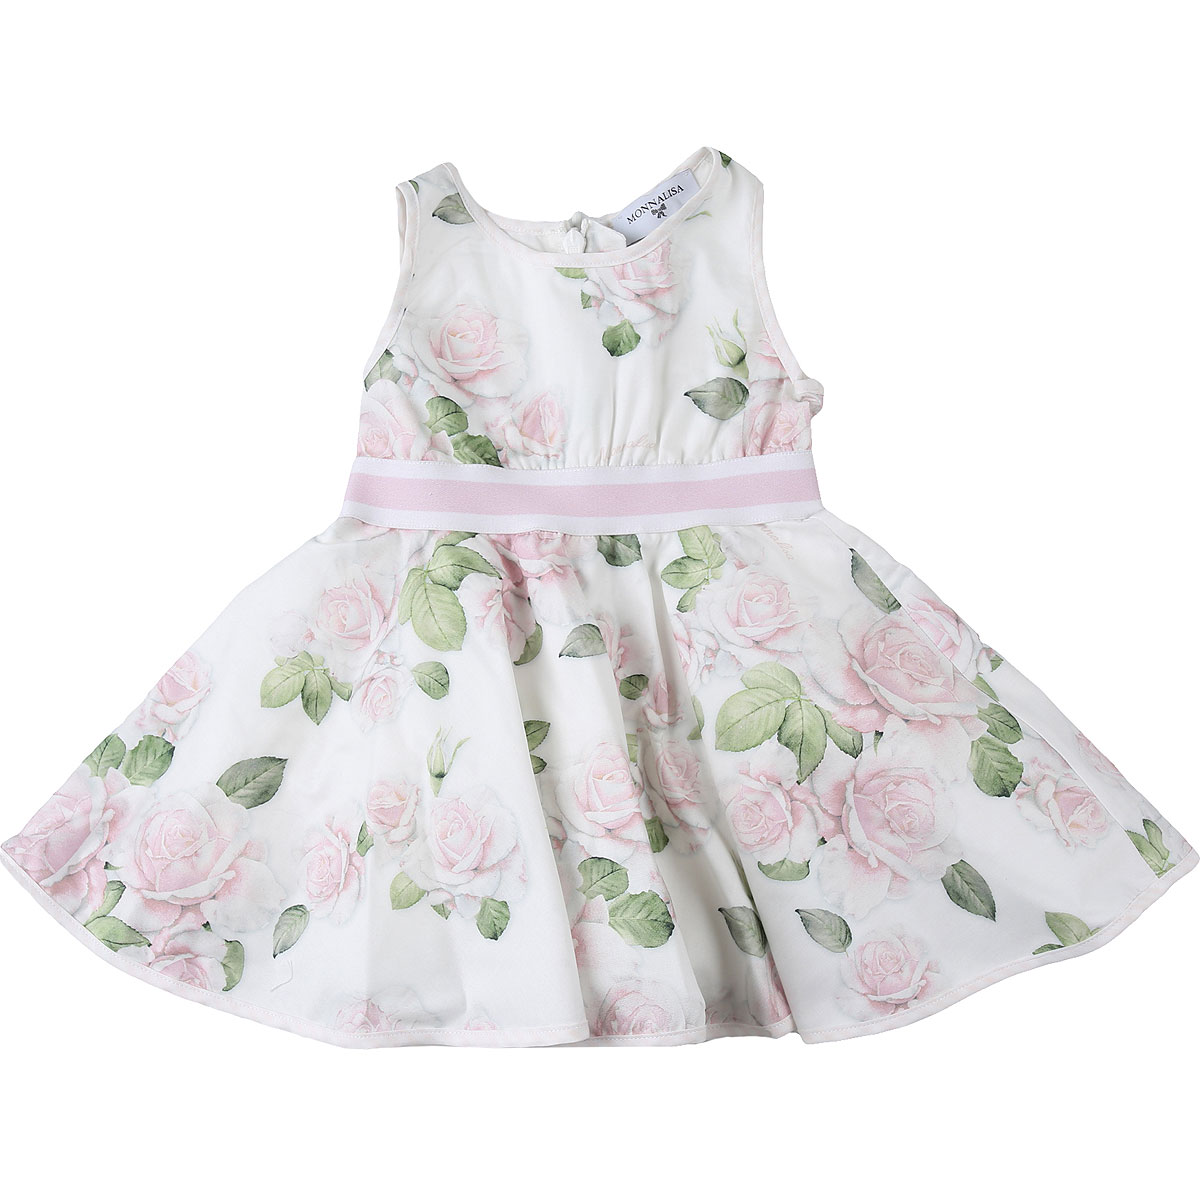 Monnalisa Baby Dress for Girls On Sale, White, Cotton, 2019, 18M 3Y 6M 9M